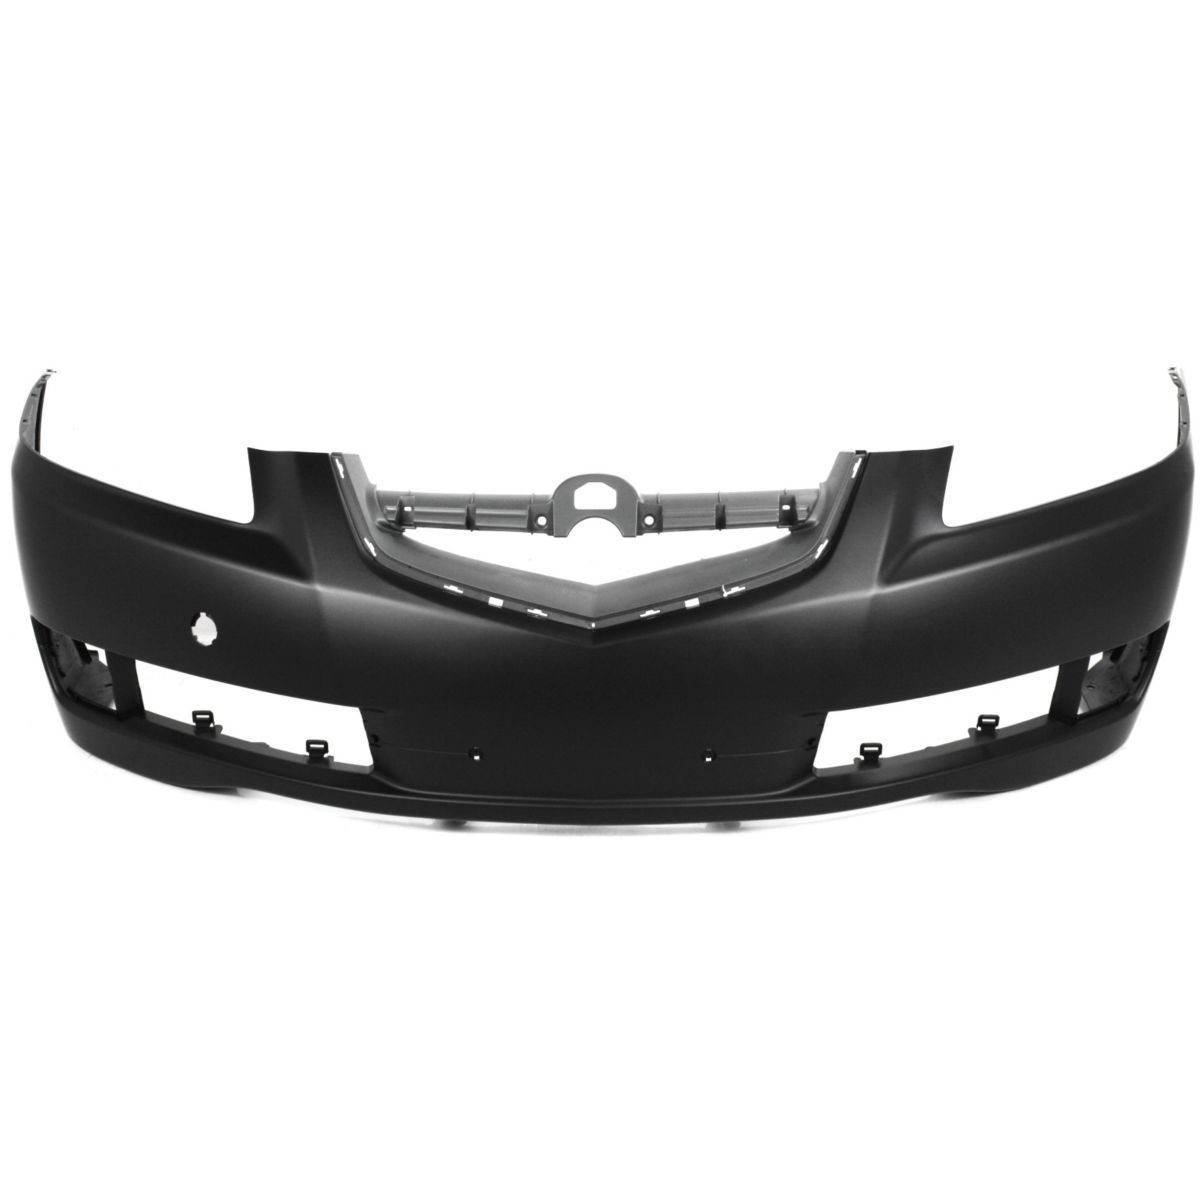 Genuine OEM Acura TL Types Front Bumper - 2007 acura tl front bumper